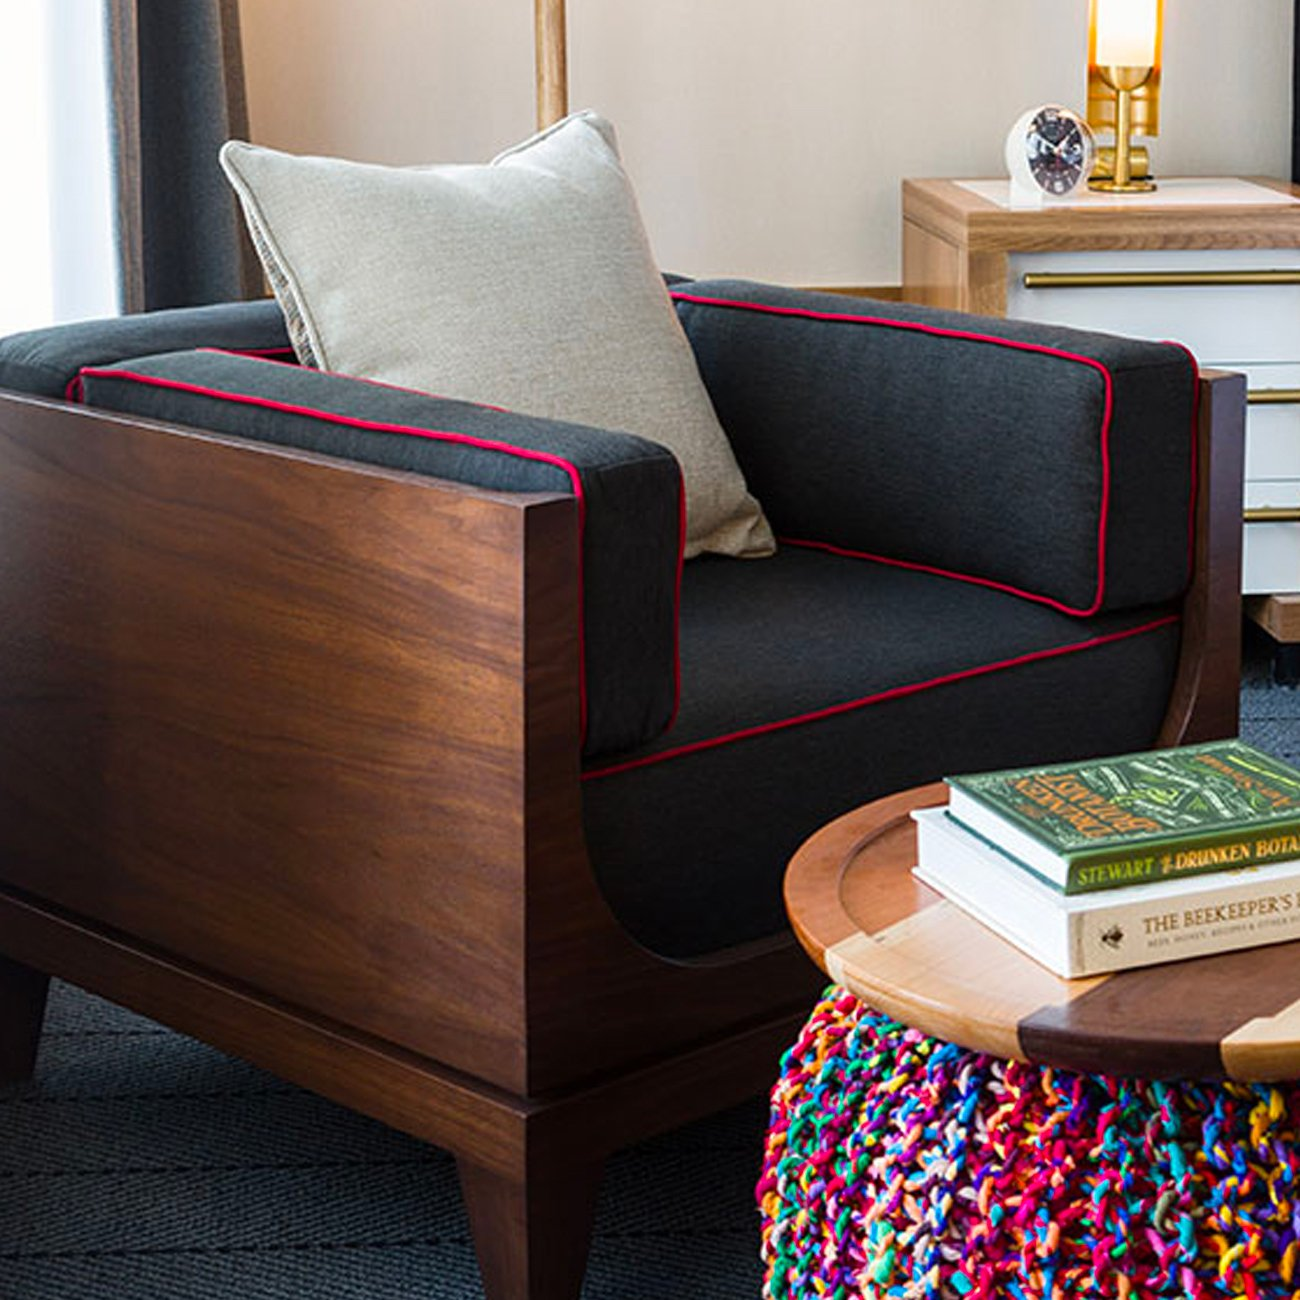 The Schofield Hotel - Cleveland - CIX Direct Furnishings